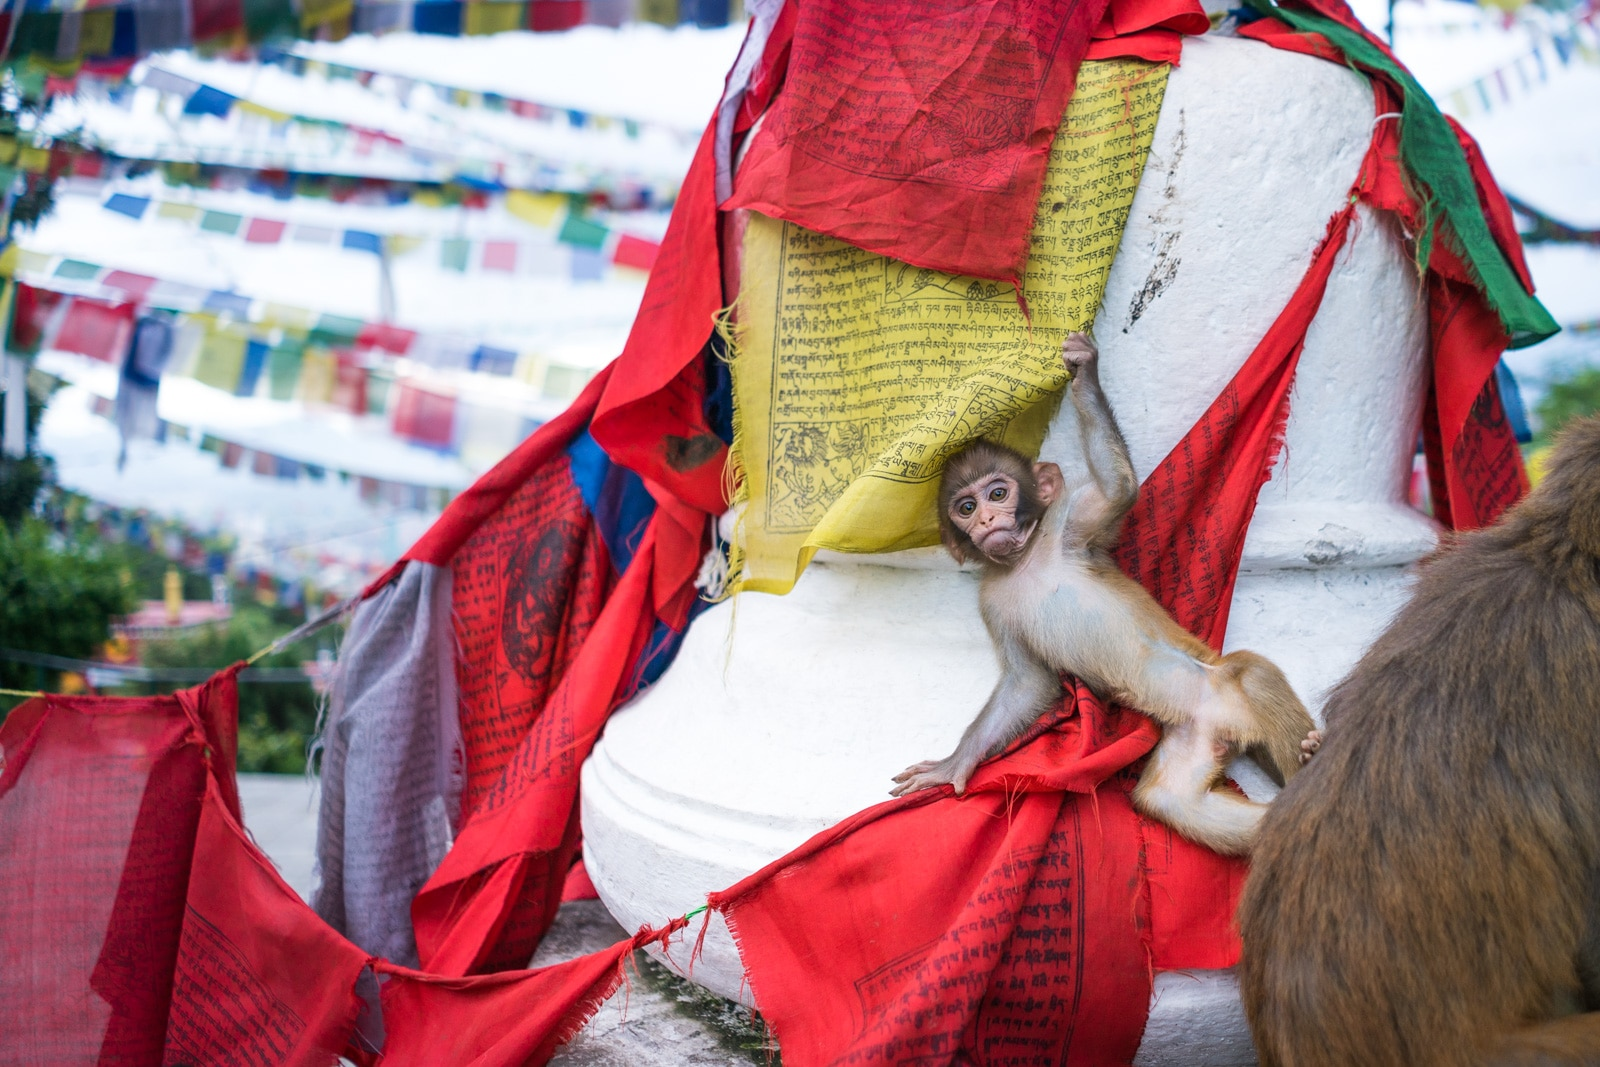 Things to do while traveling during monsoon in Nepal - A baby monkey on the prayer flags at Swayambhunath stupa, AKA Monkey Temple in Kathmandu - Lost With Purpose travel blog